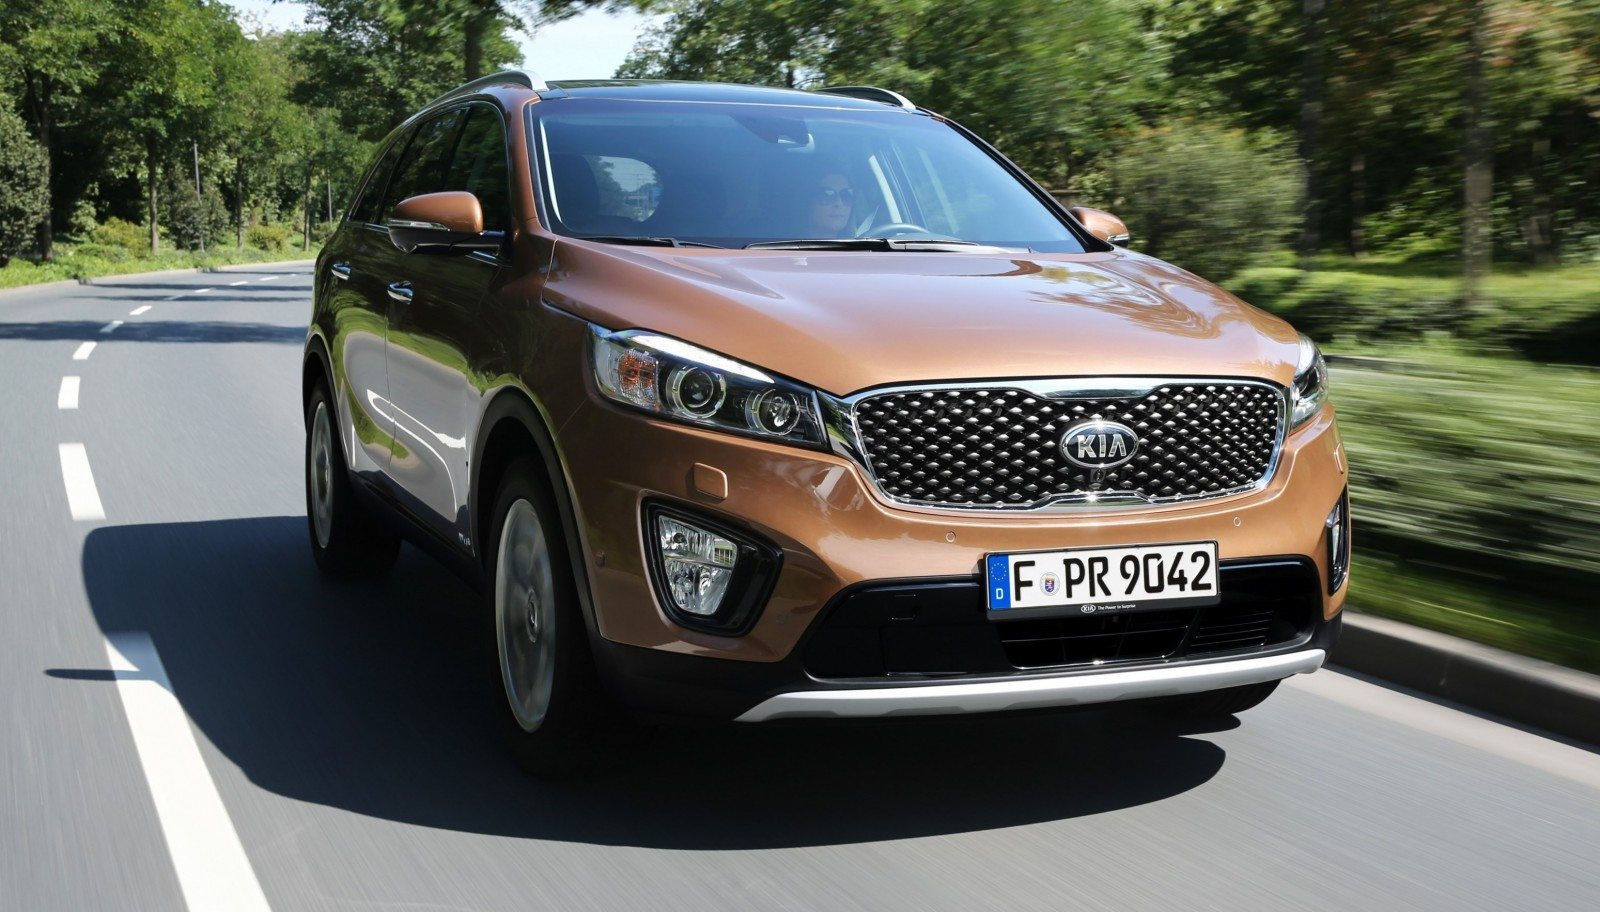 2016 kia sorento debuts in paris with jaguar baiting style at ford prices 54. Black Bedroom Furniture Sets. Home Design Ideas